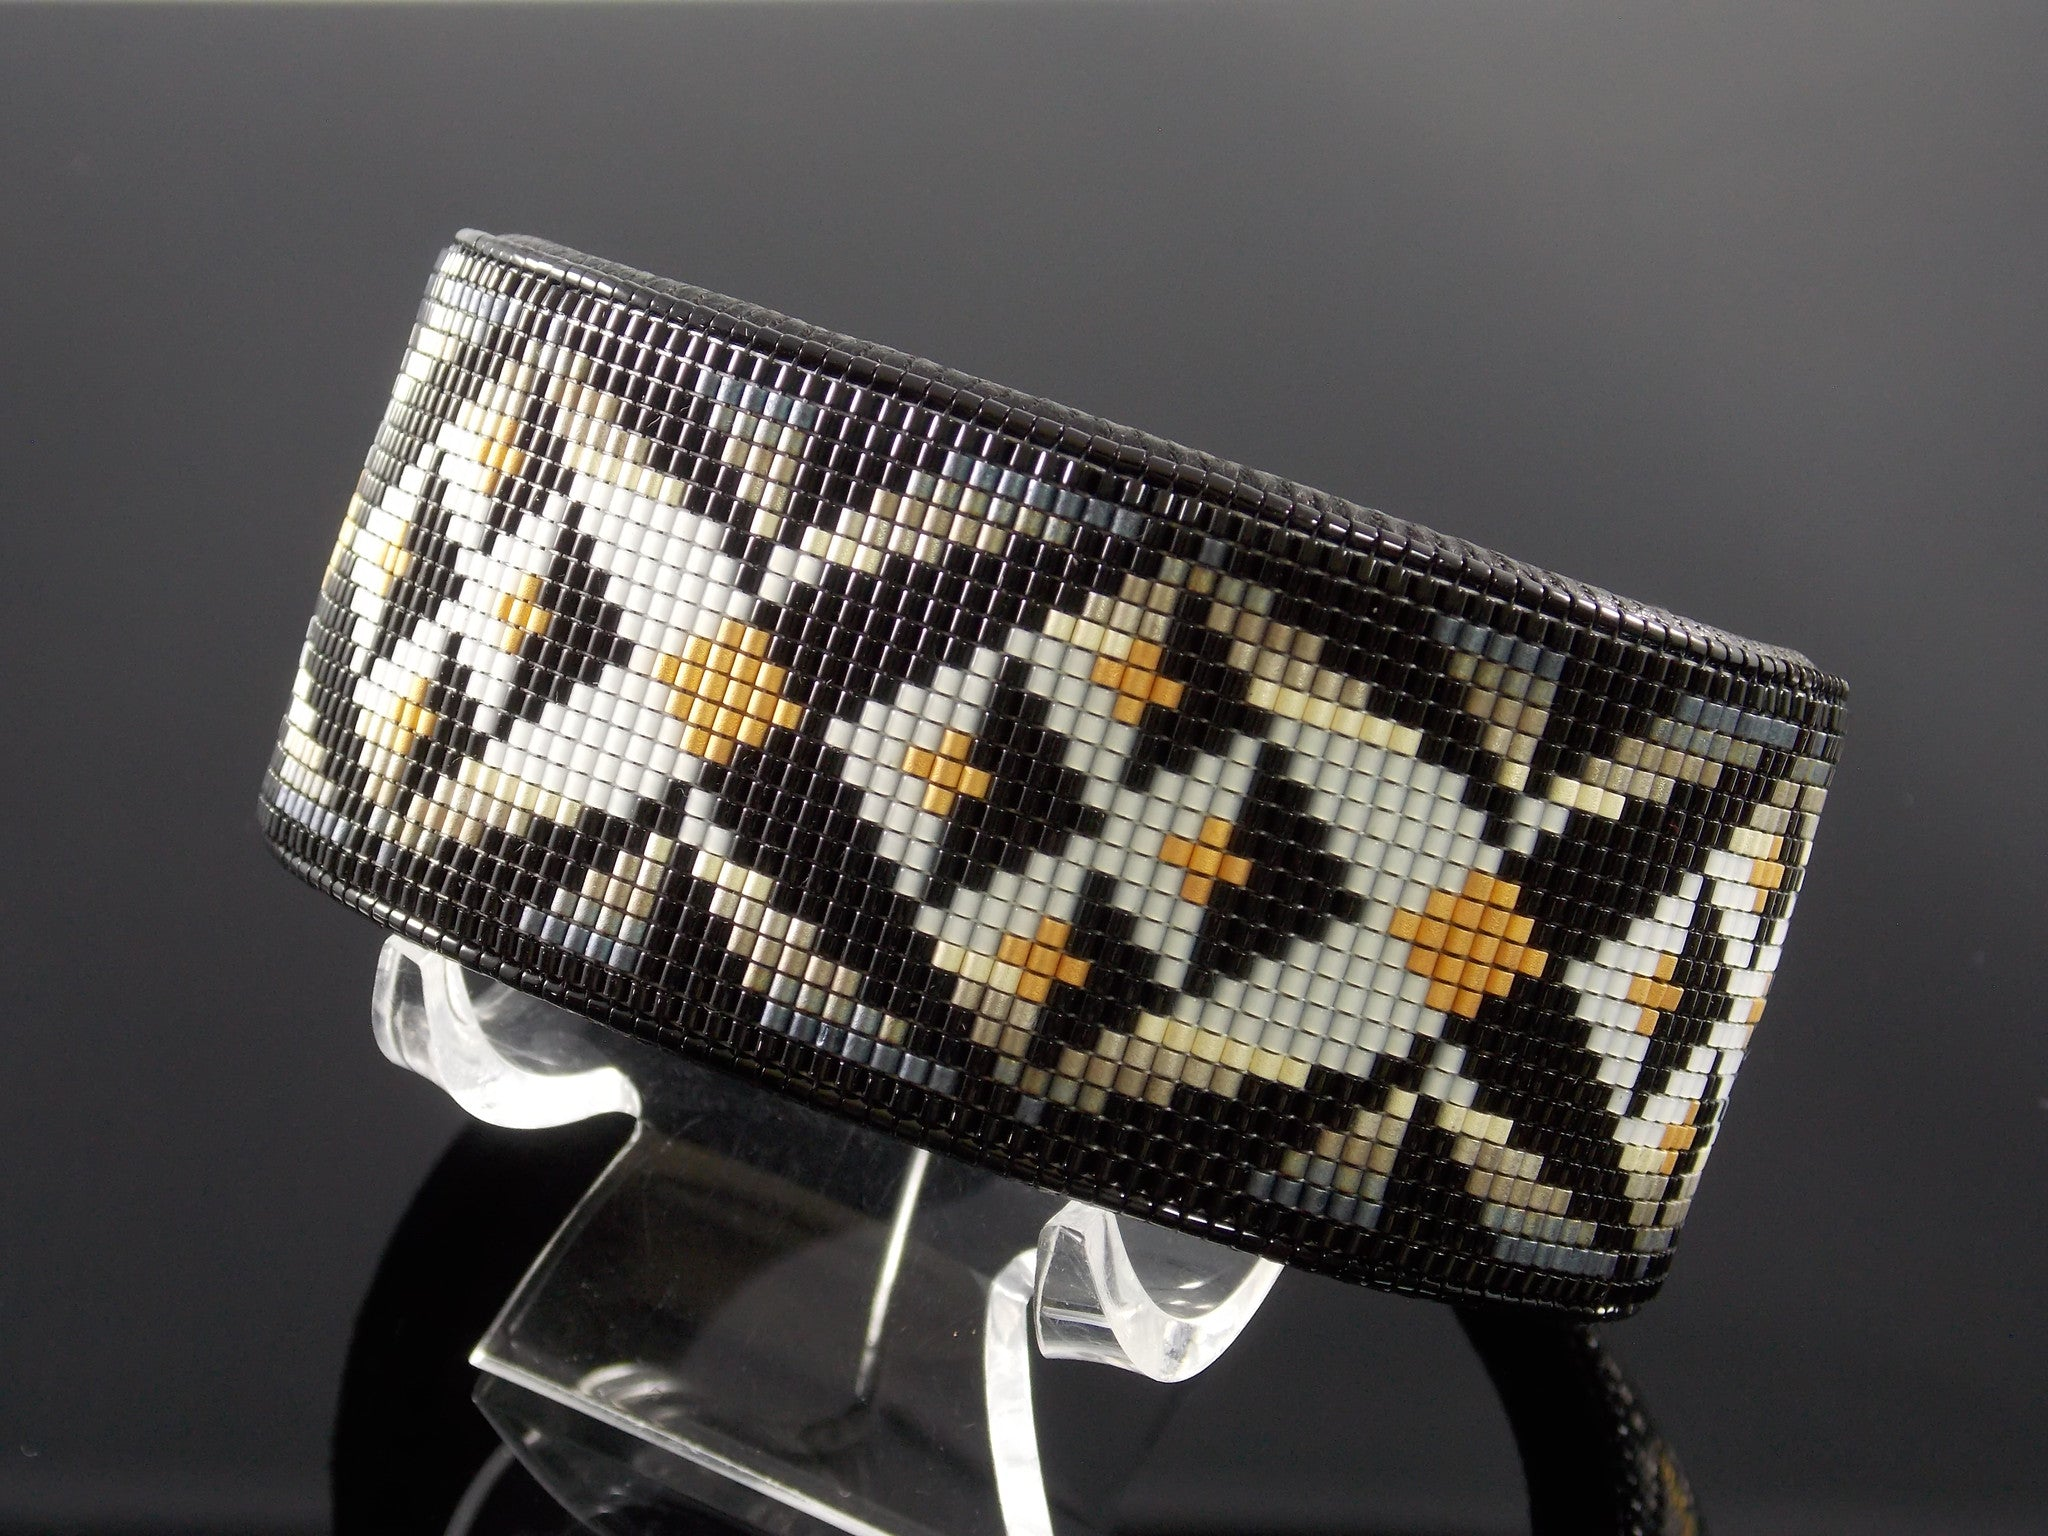 The Yuma Native American Beaded Cuff Bracelet By LJ Greywolf